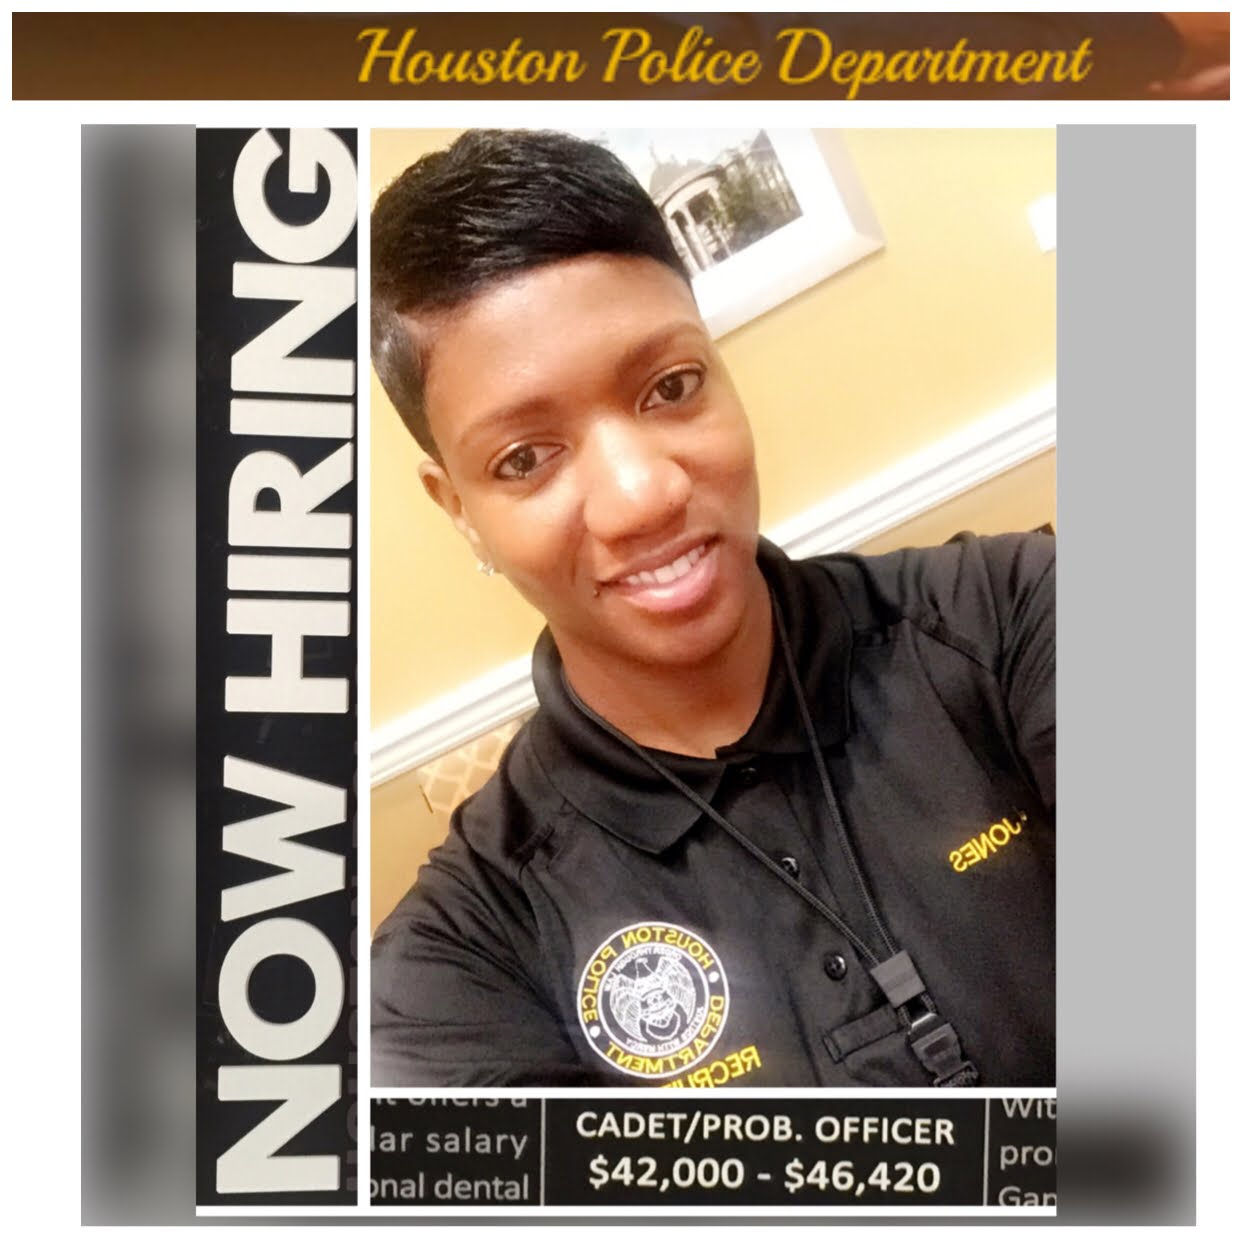 houston police internship  student number: 969273 2014 summer table of contents 1 introduction 11 internship objectives how time flies, one year's college life is passed away.